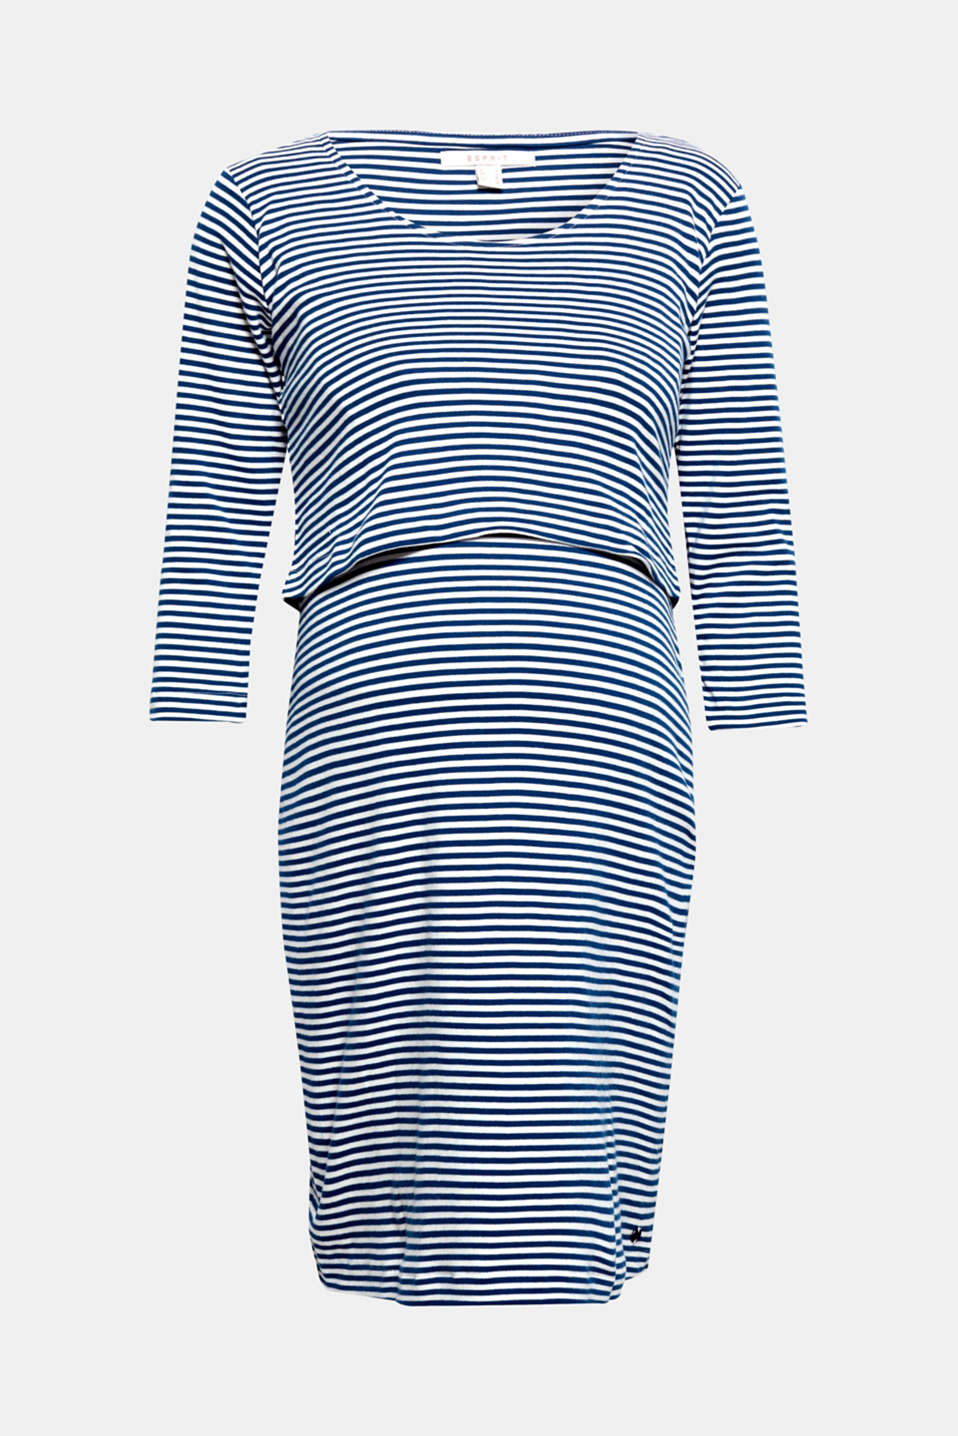 Modern, layered casual stripes: this dress with integrated nursing function allows for discreet and comfortable nursing.